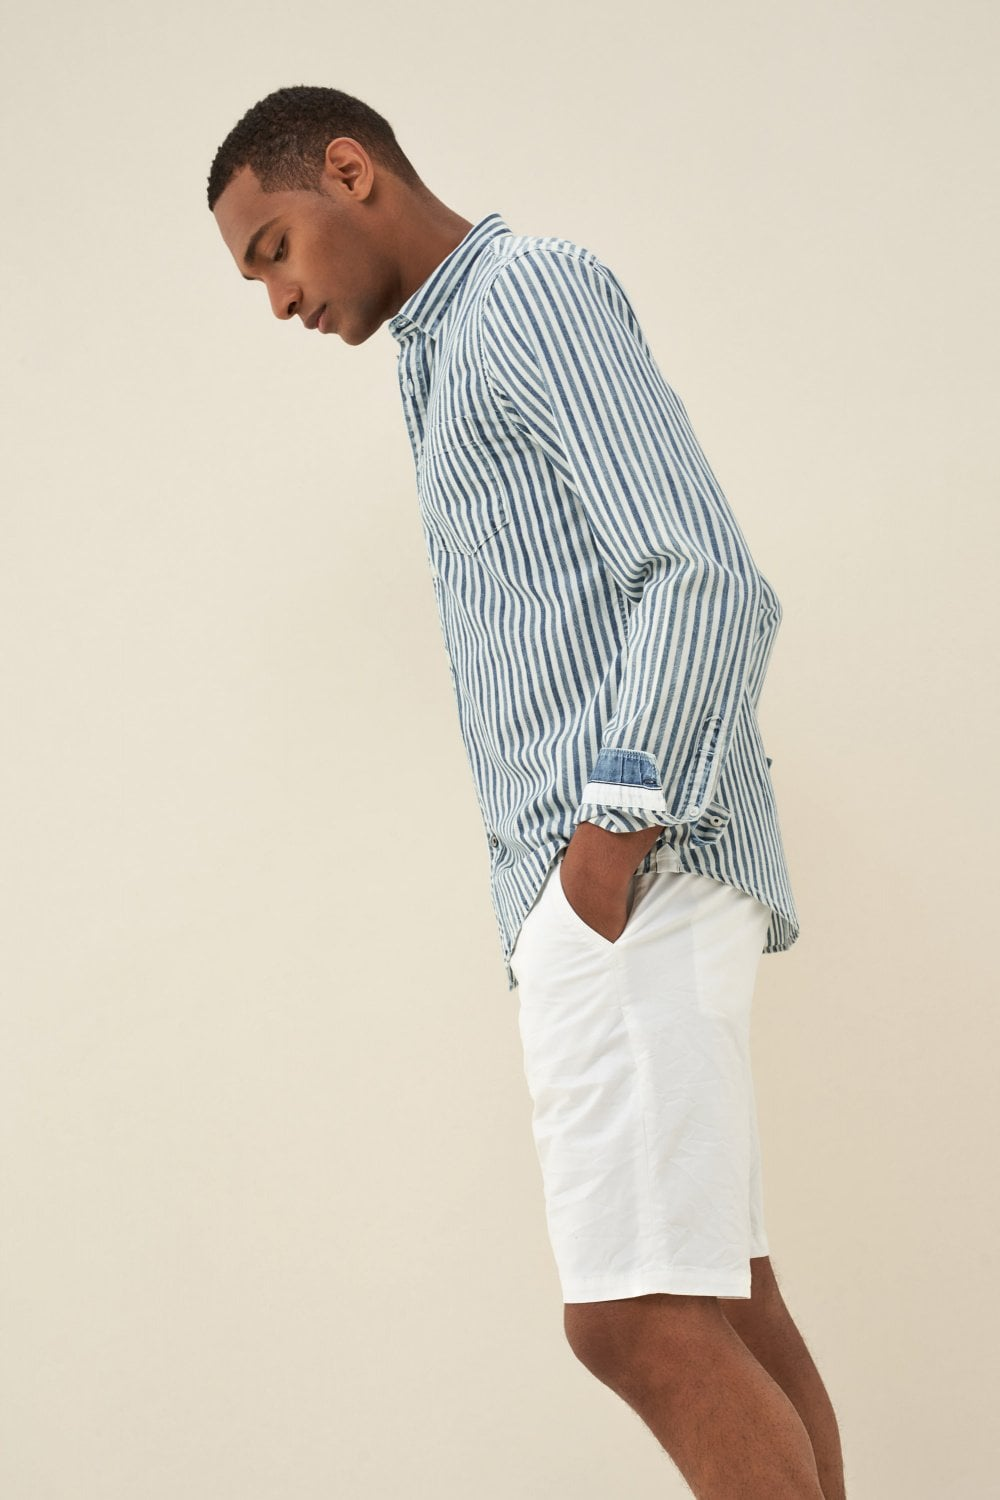 Slim fit vertical striped shirt - Salsa